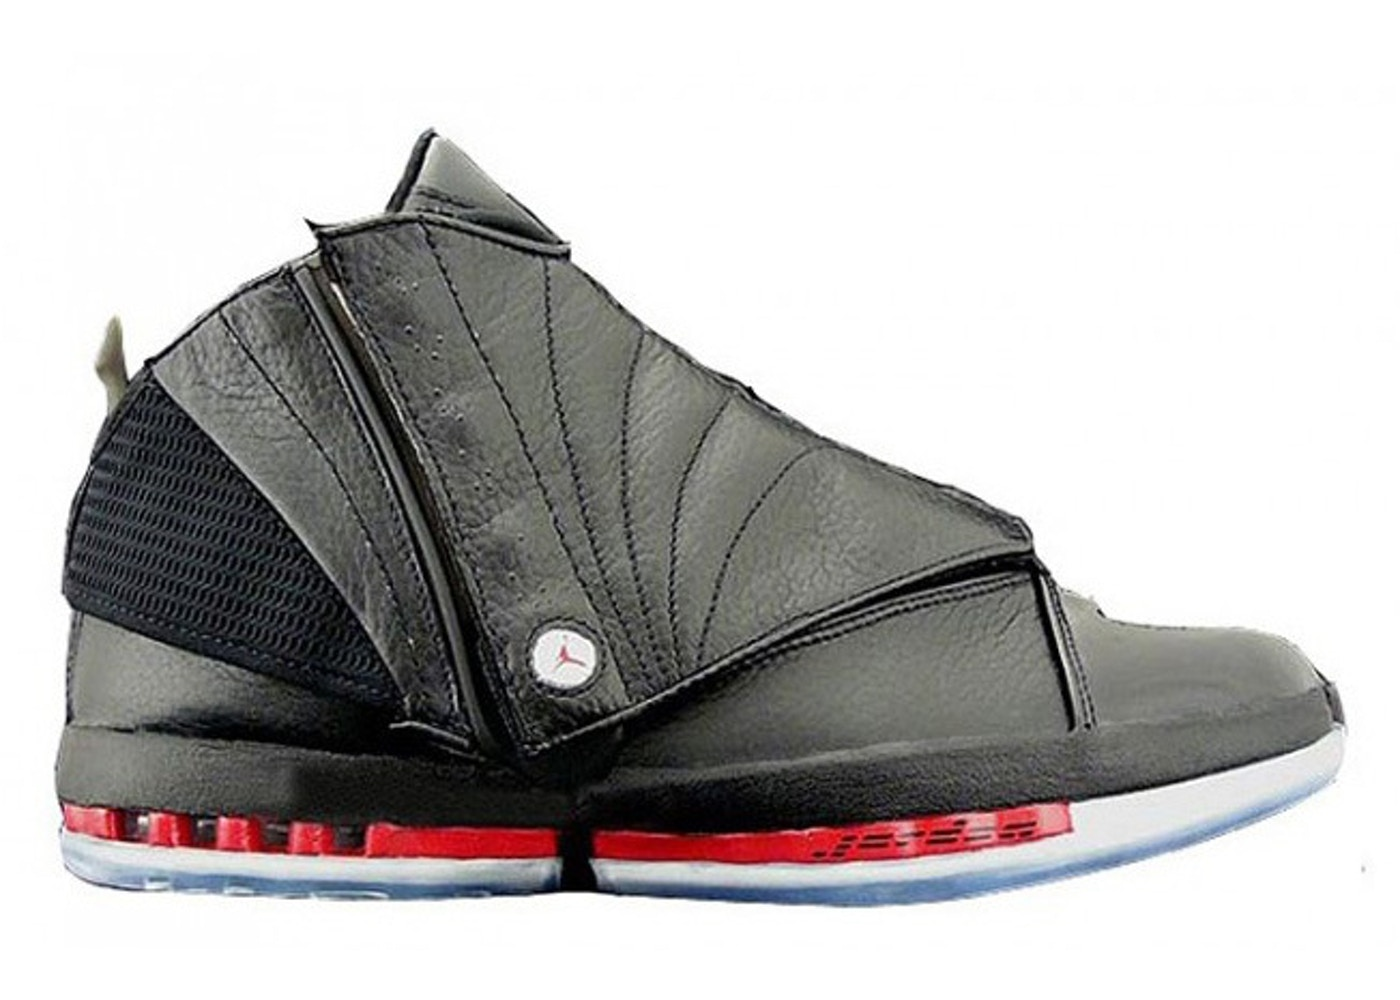 7dcadb1227b8 Buy Air Jordan 16 Shoes   Deadstock Sneakers